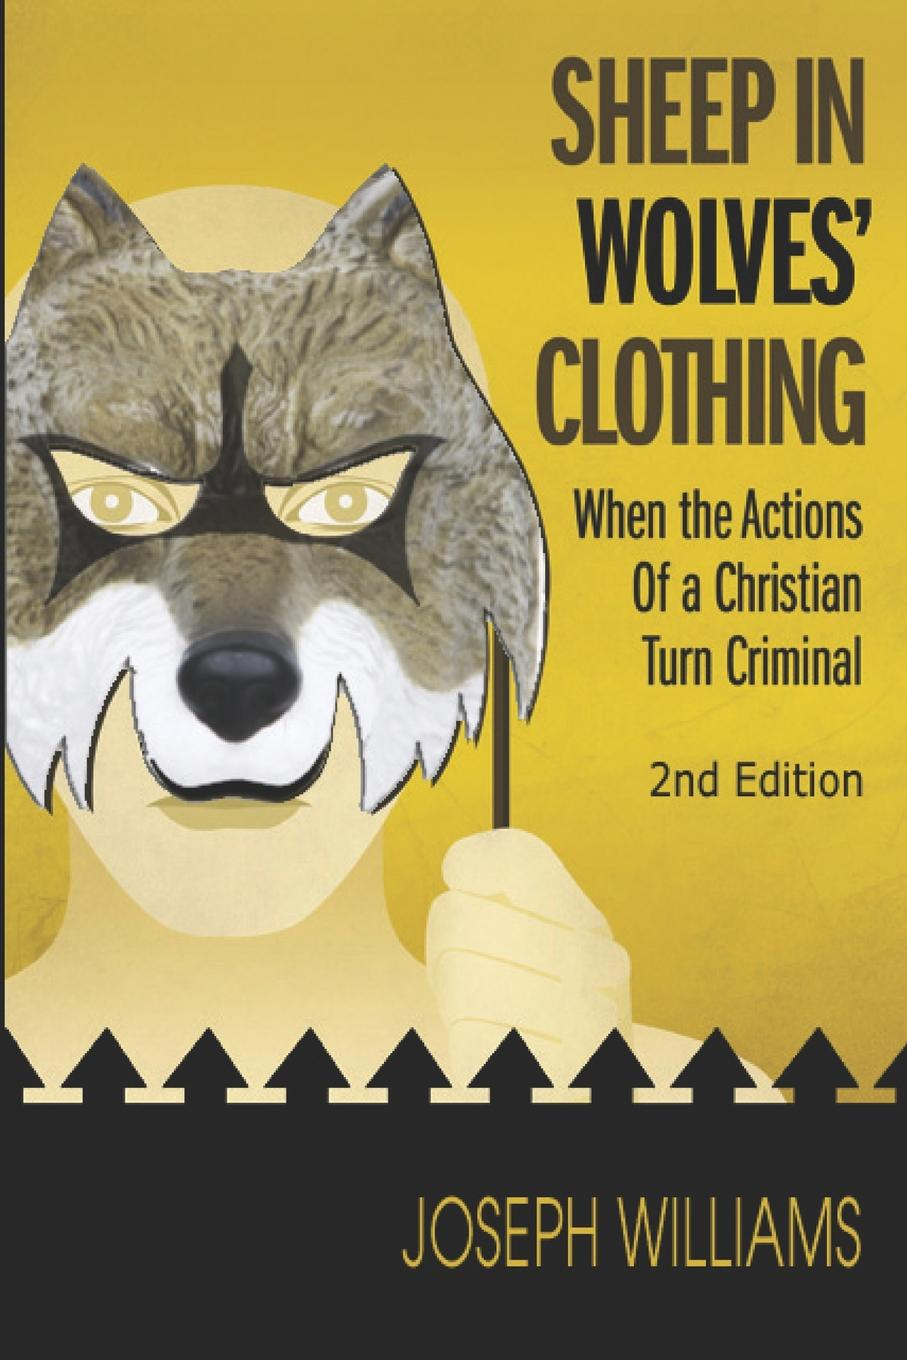 Joseph Williams Sheep in Wolves' Clothing. When the Actions of a Christian Turn Criminal fasciolosis in sheep